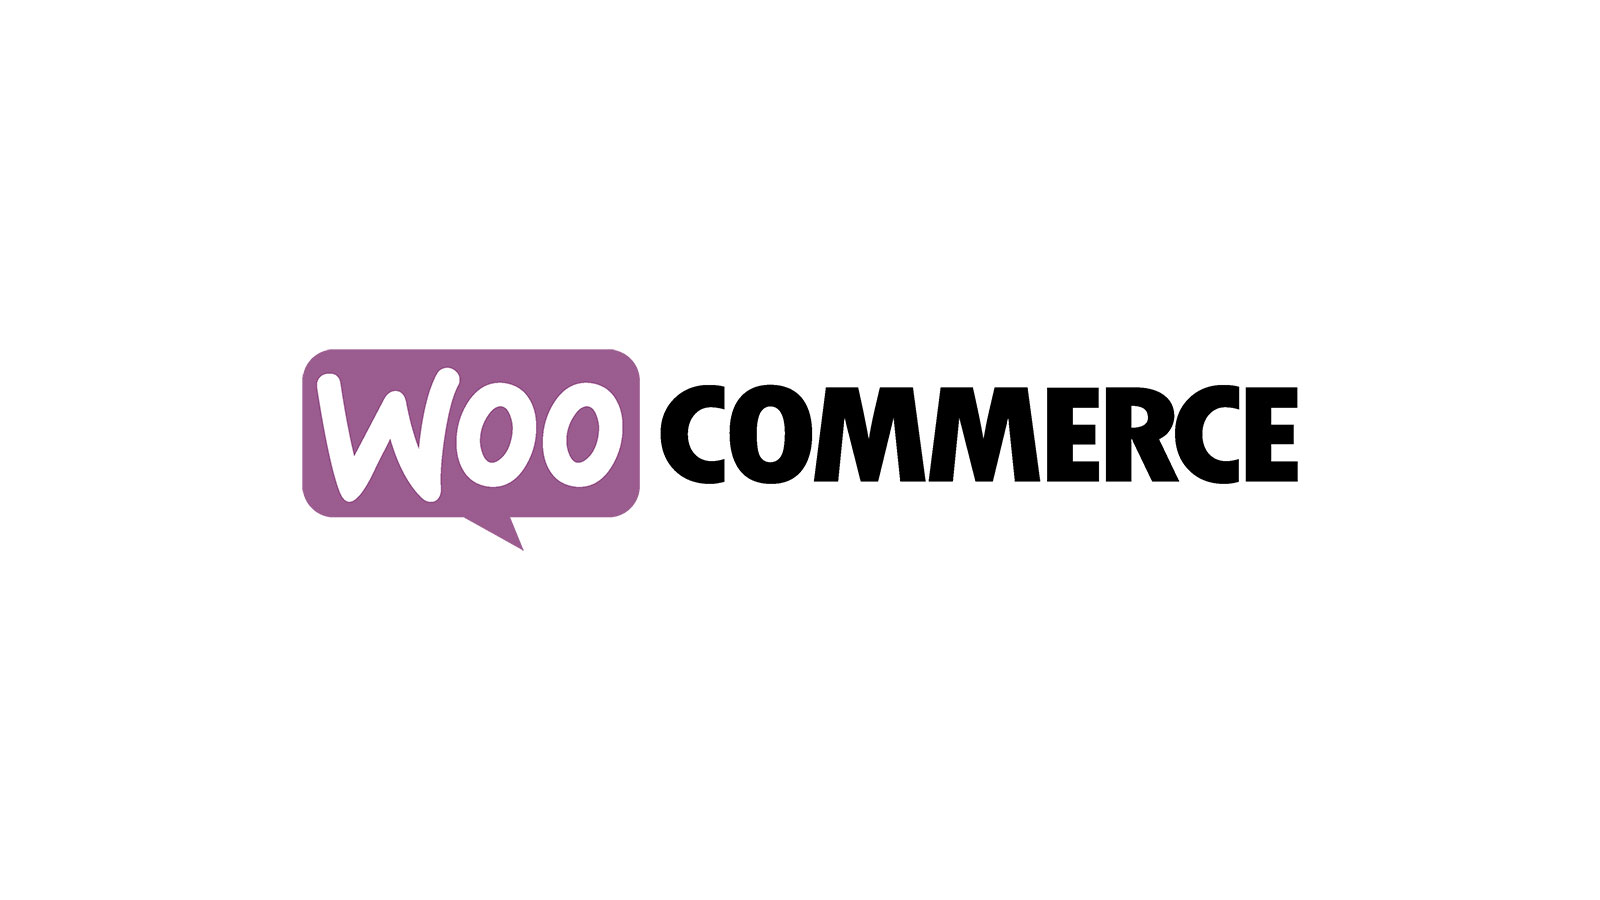 woocommerce logo - Benefits Of Using WooCommerce As An eCommerce Platform.